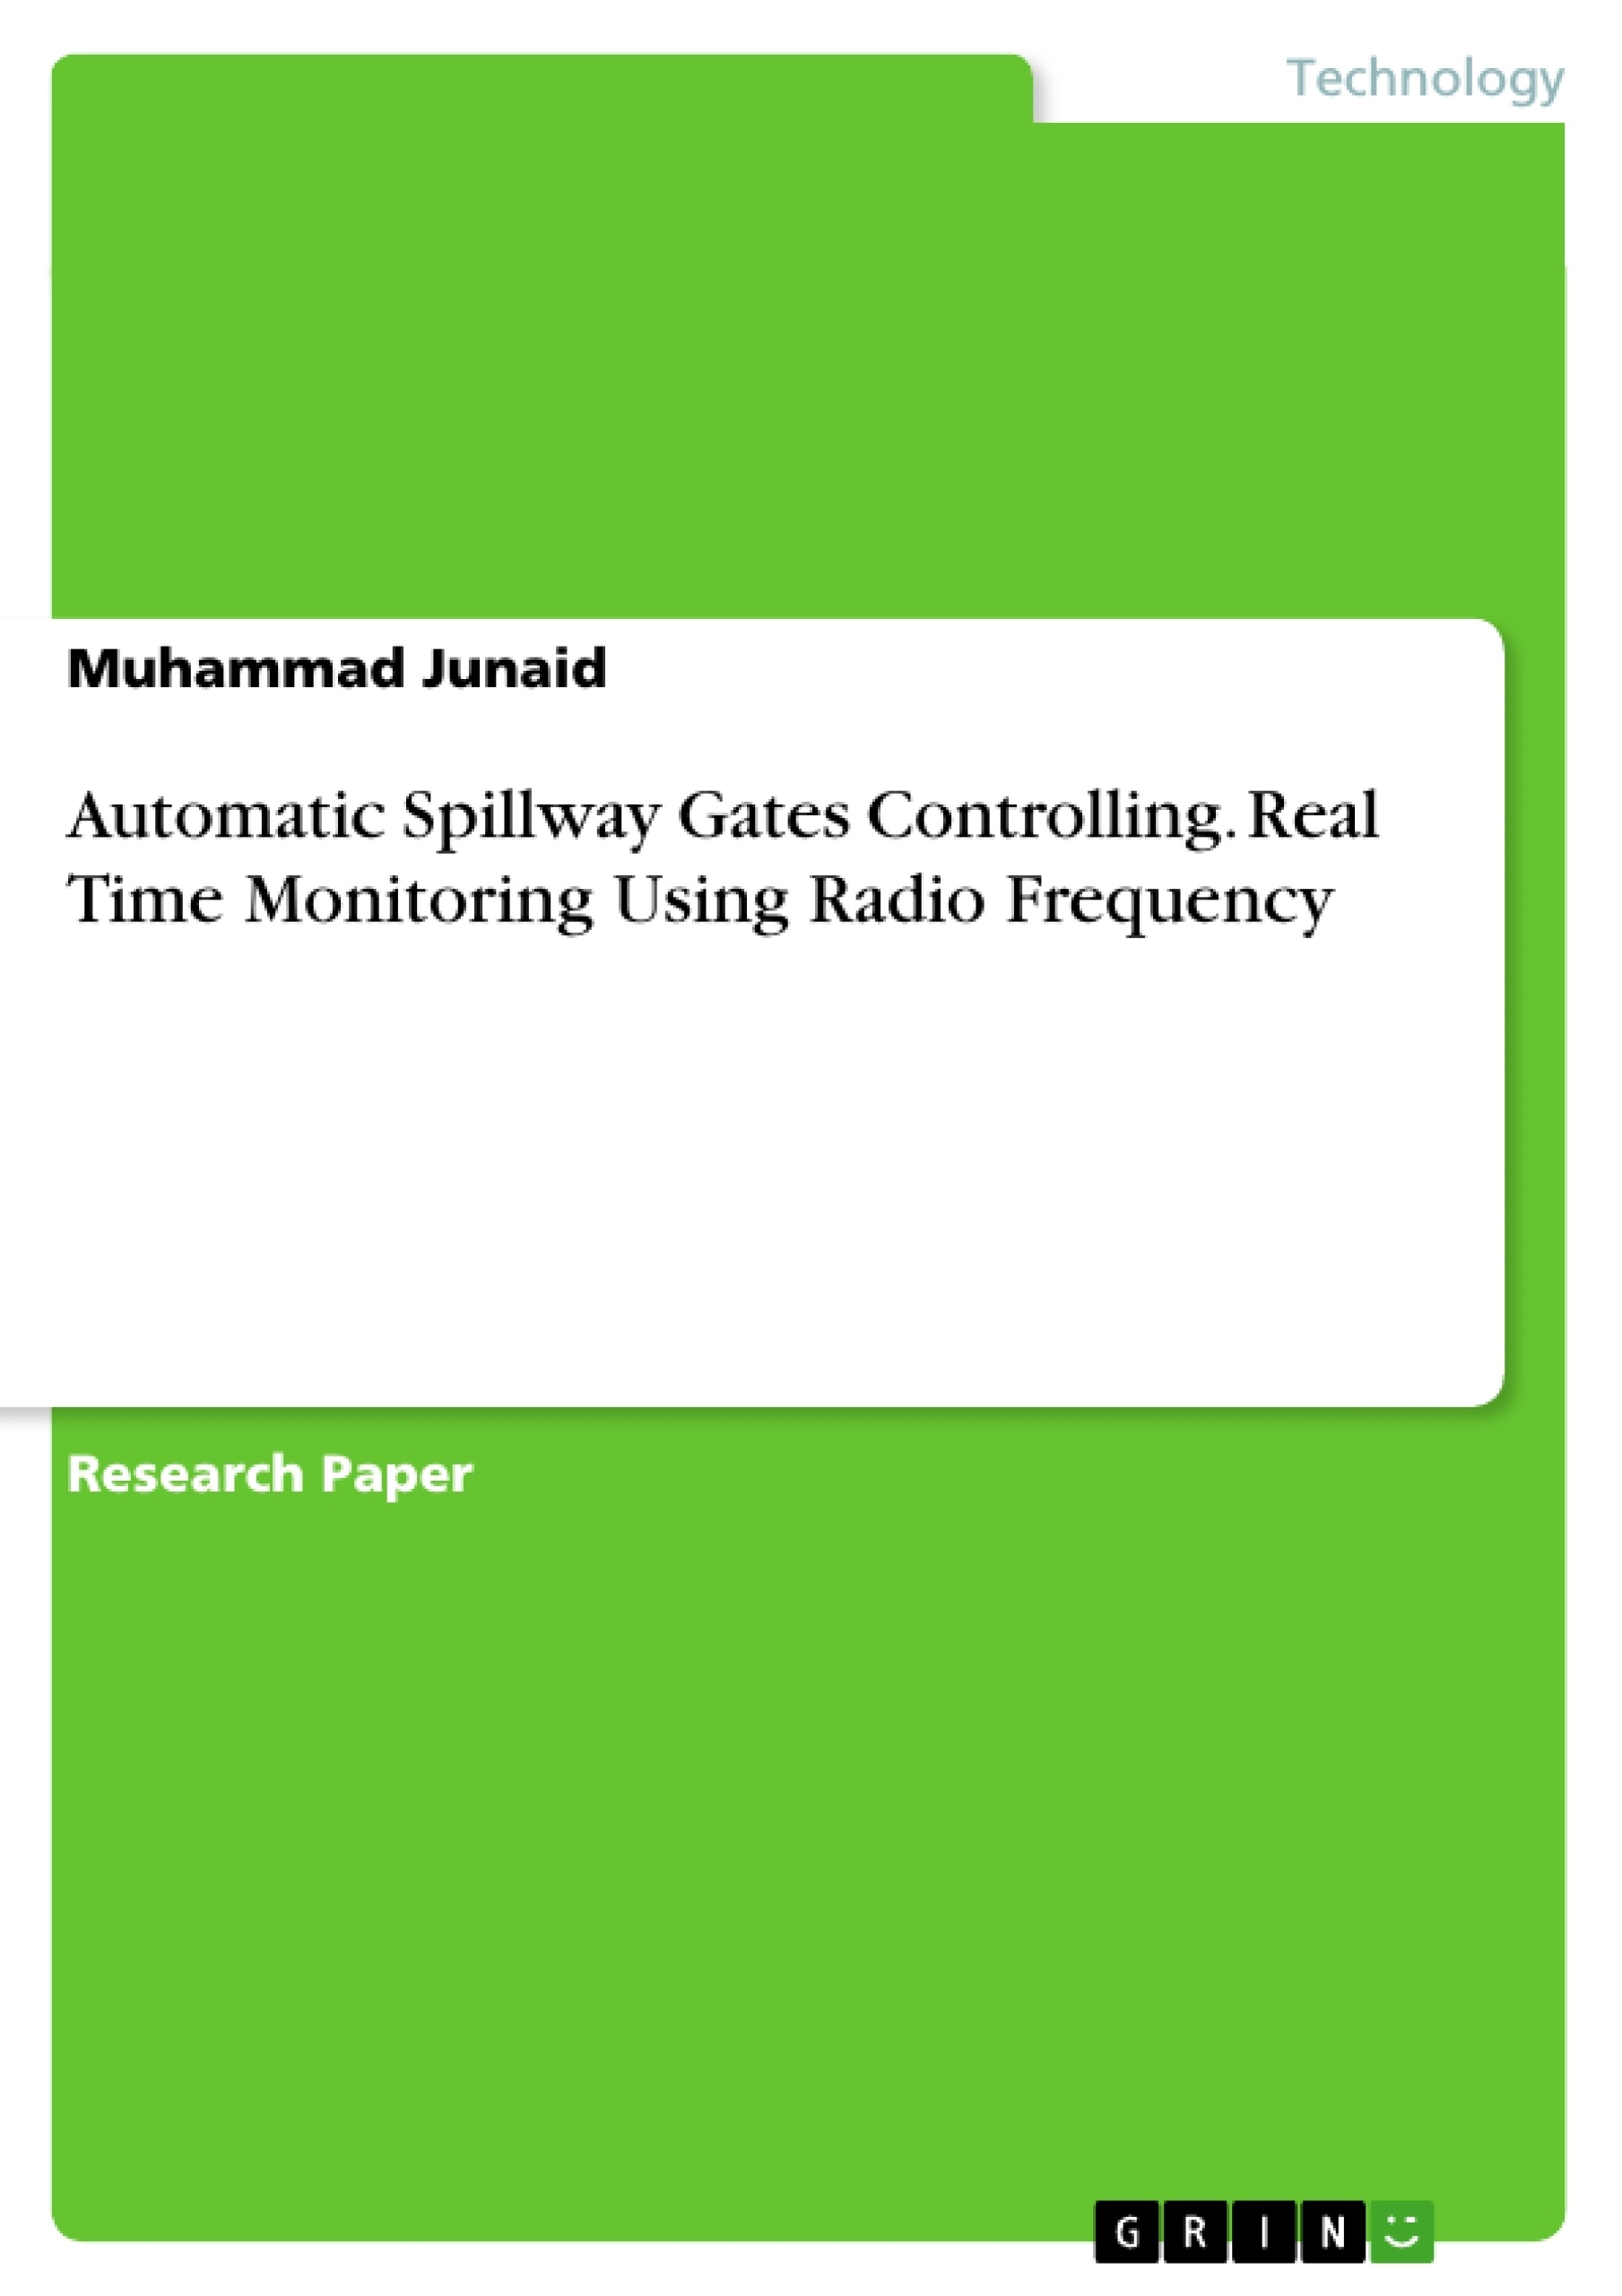 Title: Automatic Spillway Gates Controlling. Real Time Monitoring Using Radio Frequency